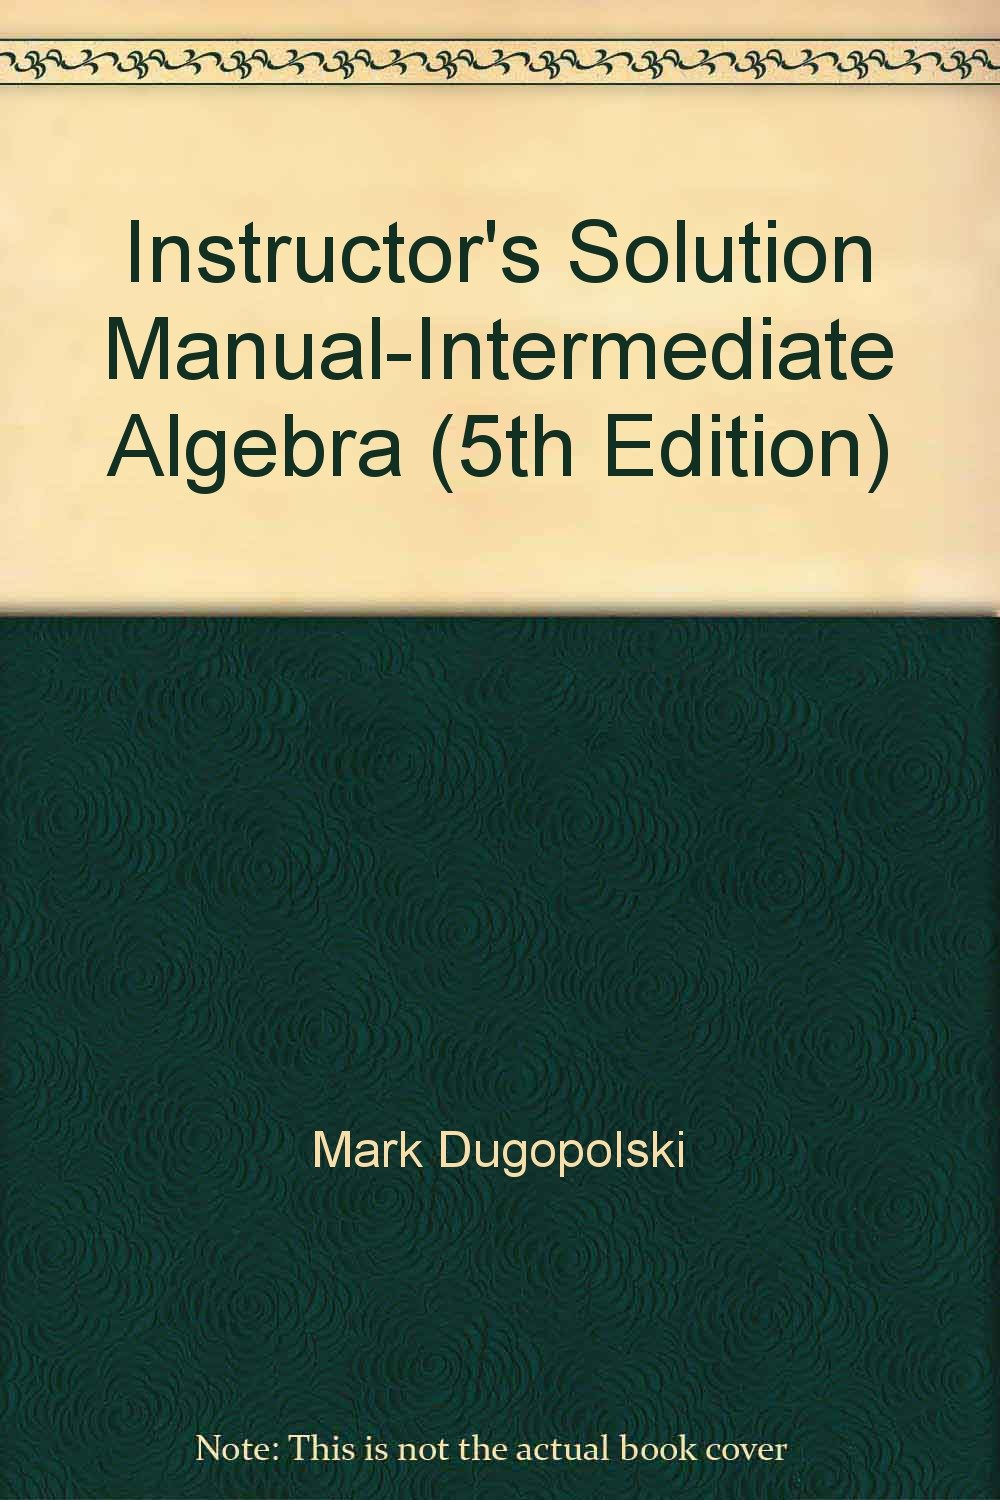 Instructor's Solution Manual-Intermediate Algebra (5th Edition): Mark  Dugopolski: 9780073022437: Amazon.com: Books